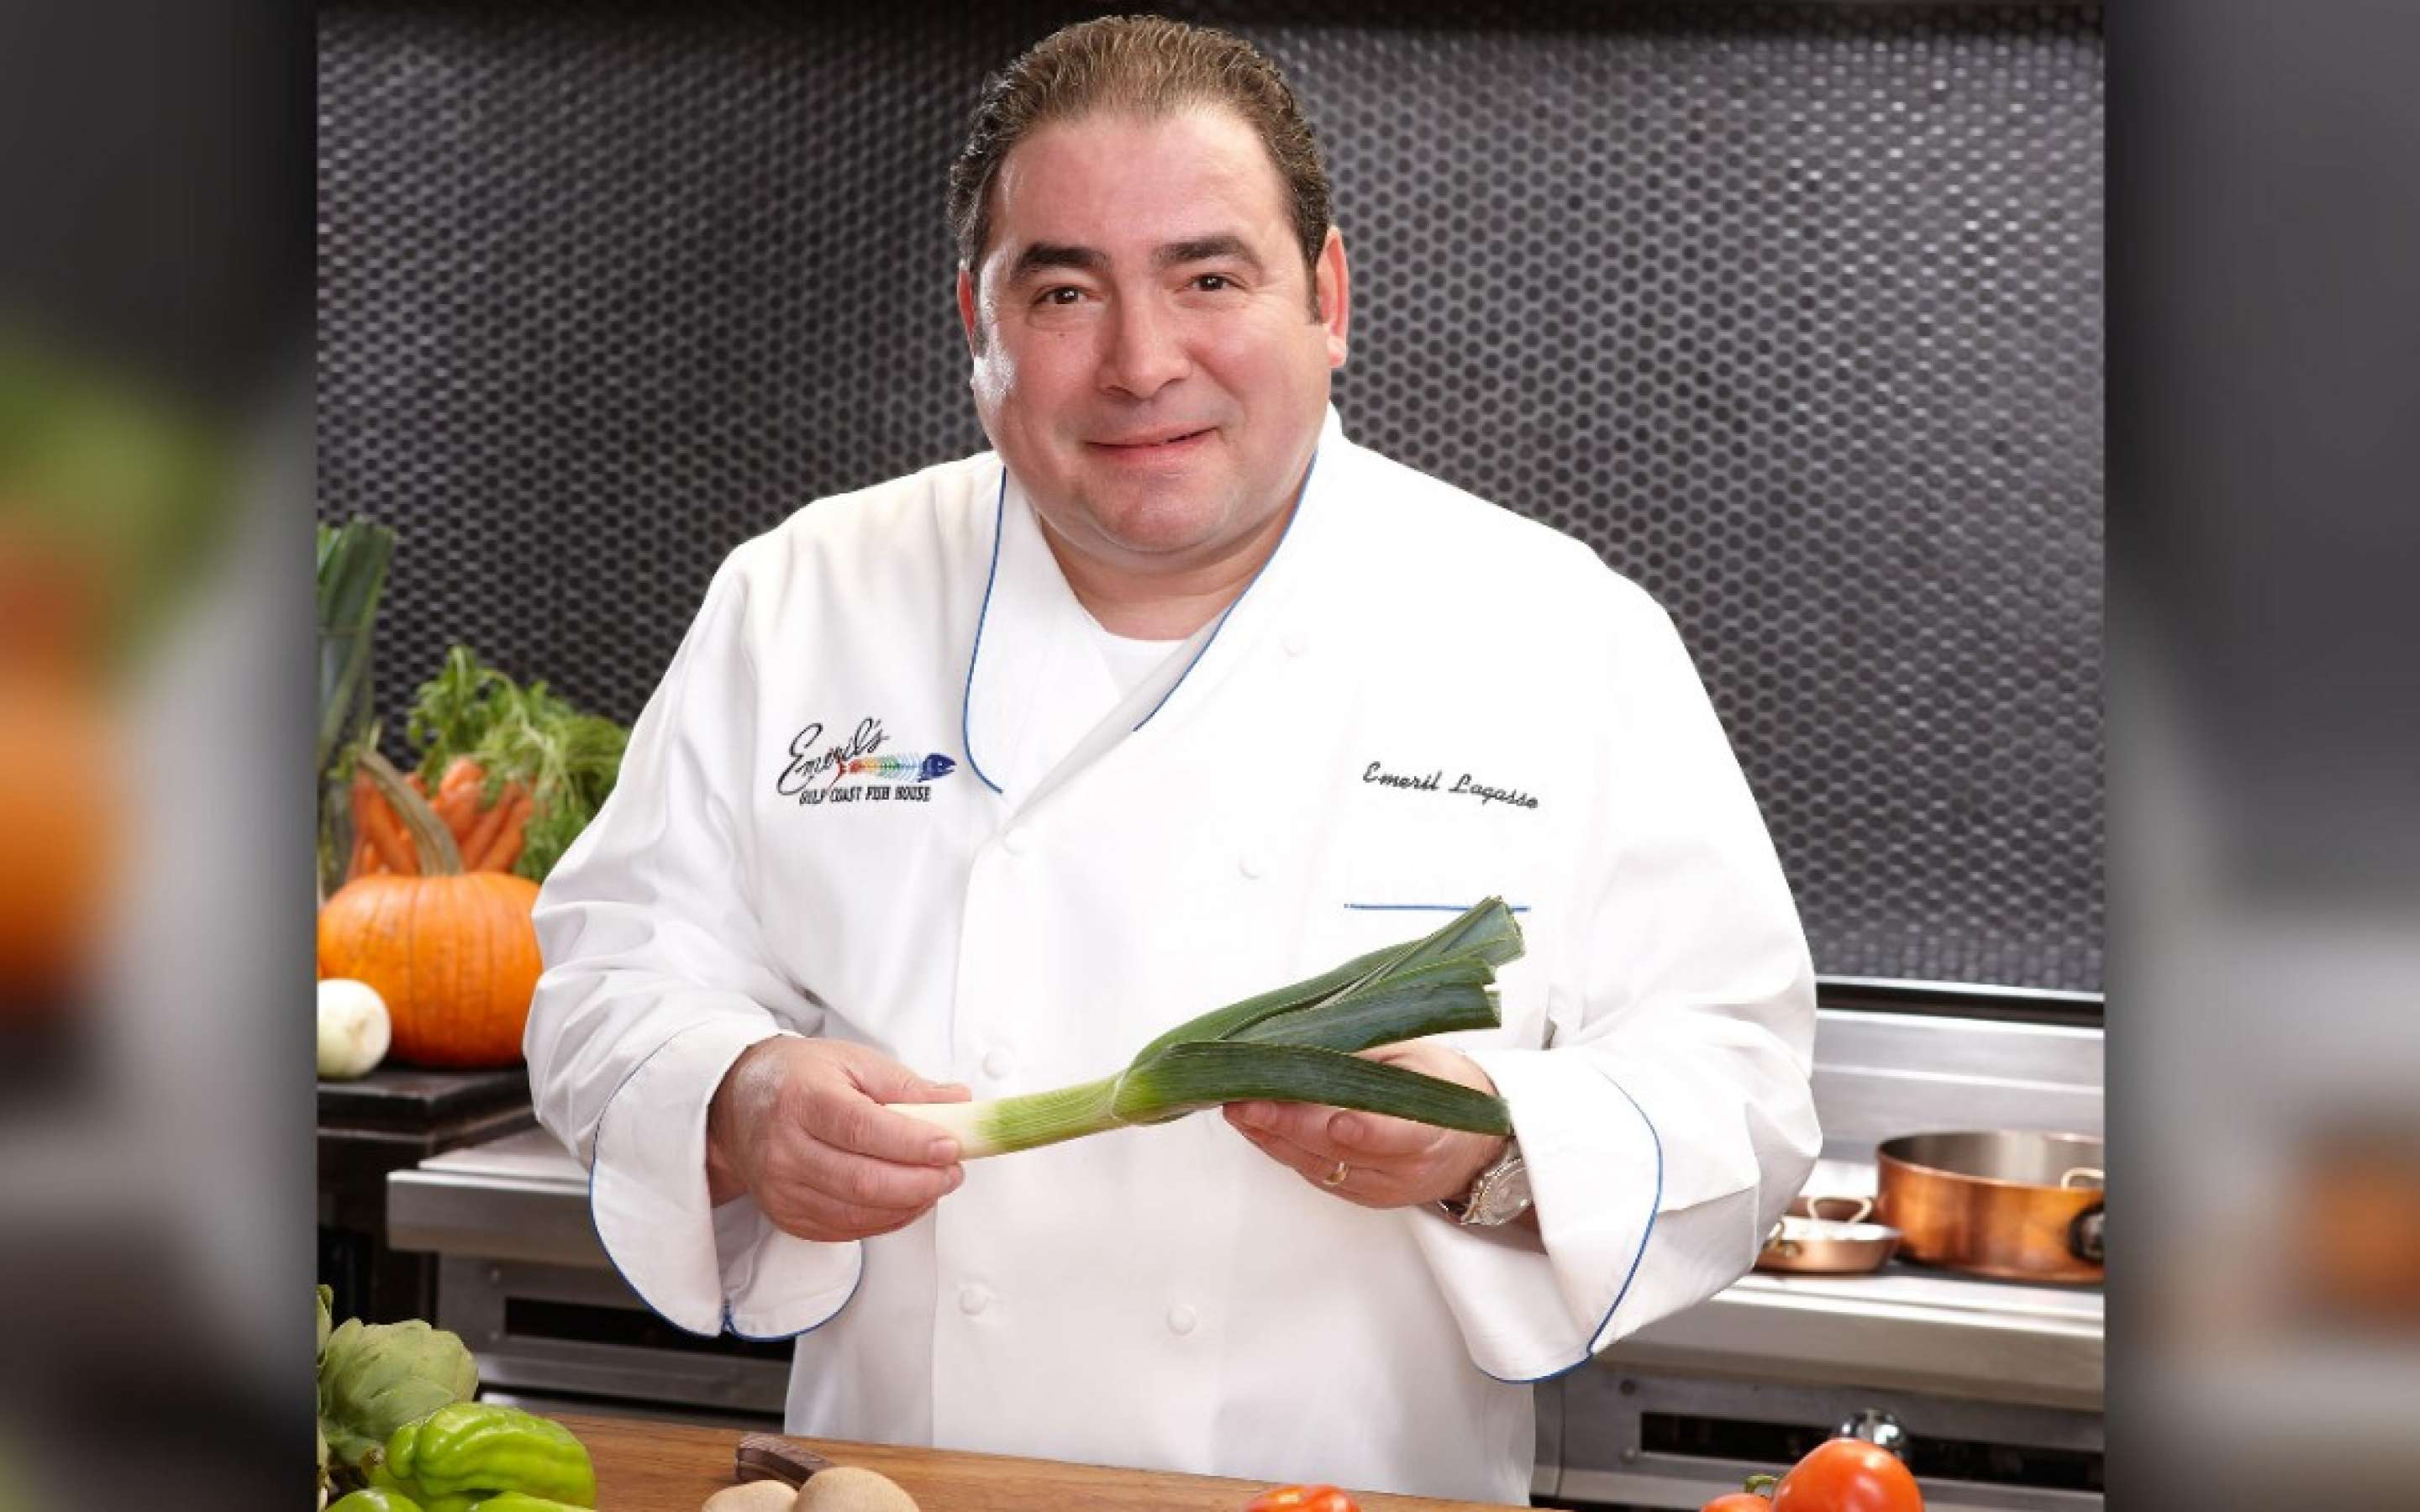 mgm-grand-restaurant-emerils-chef-emeril-lagasse-lifestyle-kitchen-vegetables-@2x.jpg.image.2880.1800.high